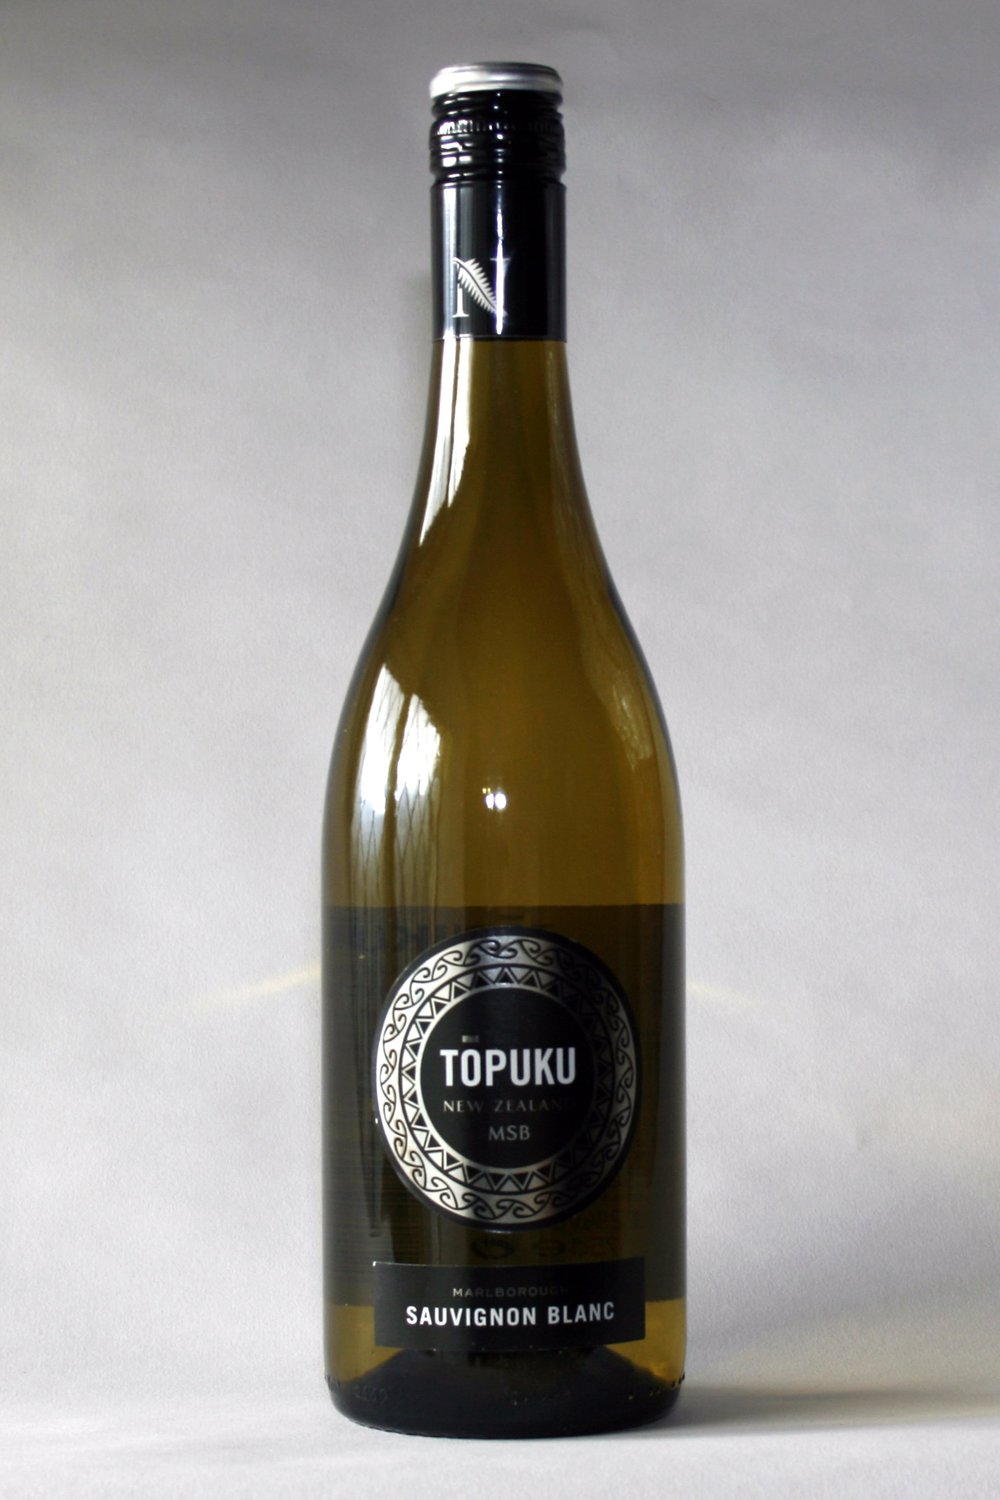 Topuku, NZ, Sauvignon Blanc - DETAILS TO COME